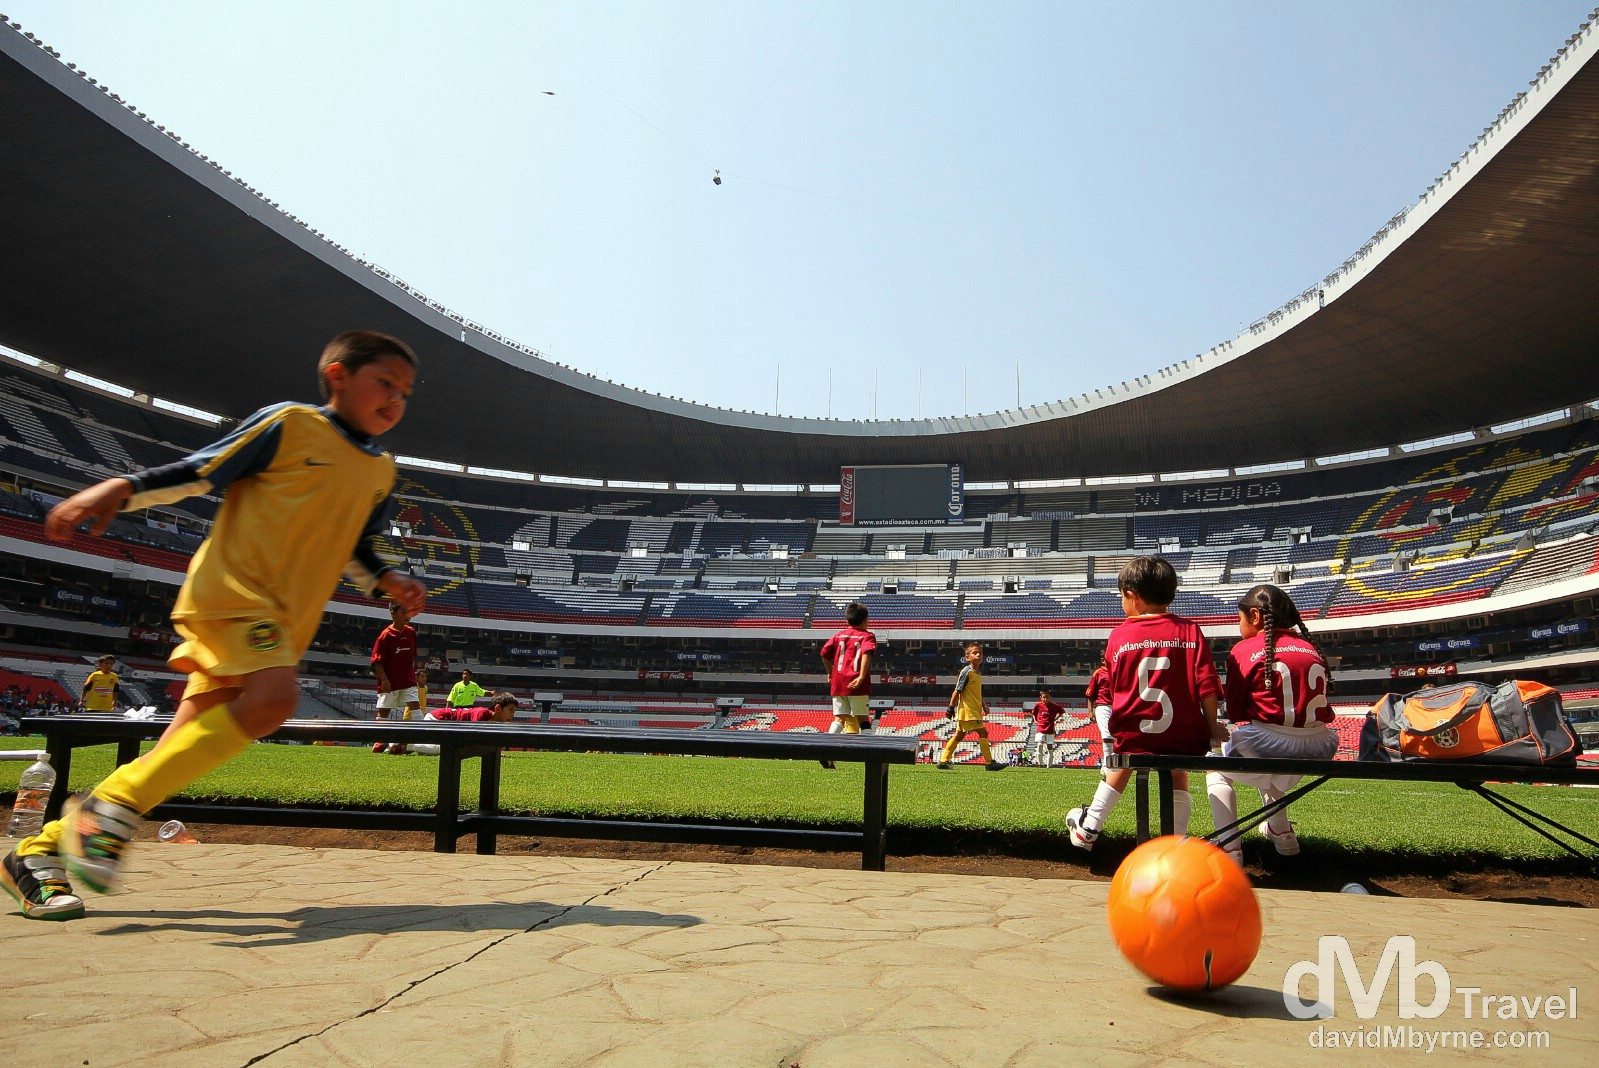 Kids playing soccer in the Estadio Azteca. I loved the tour I took of the Azteca Stadium but was amazed how small one of the biggest soccer stadiums in the world looked in person. TV really does make things look so much bigger. Estadio Azteca, Mexico City. April 28th 2013.